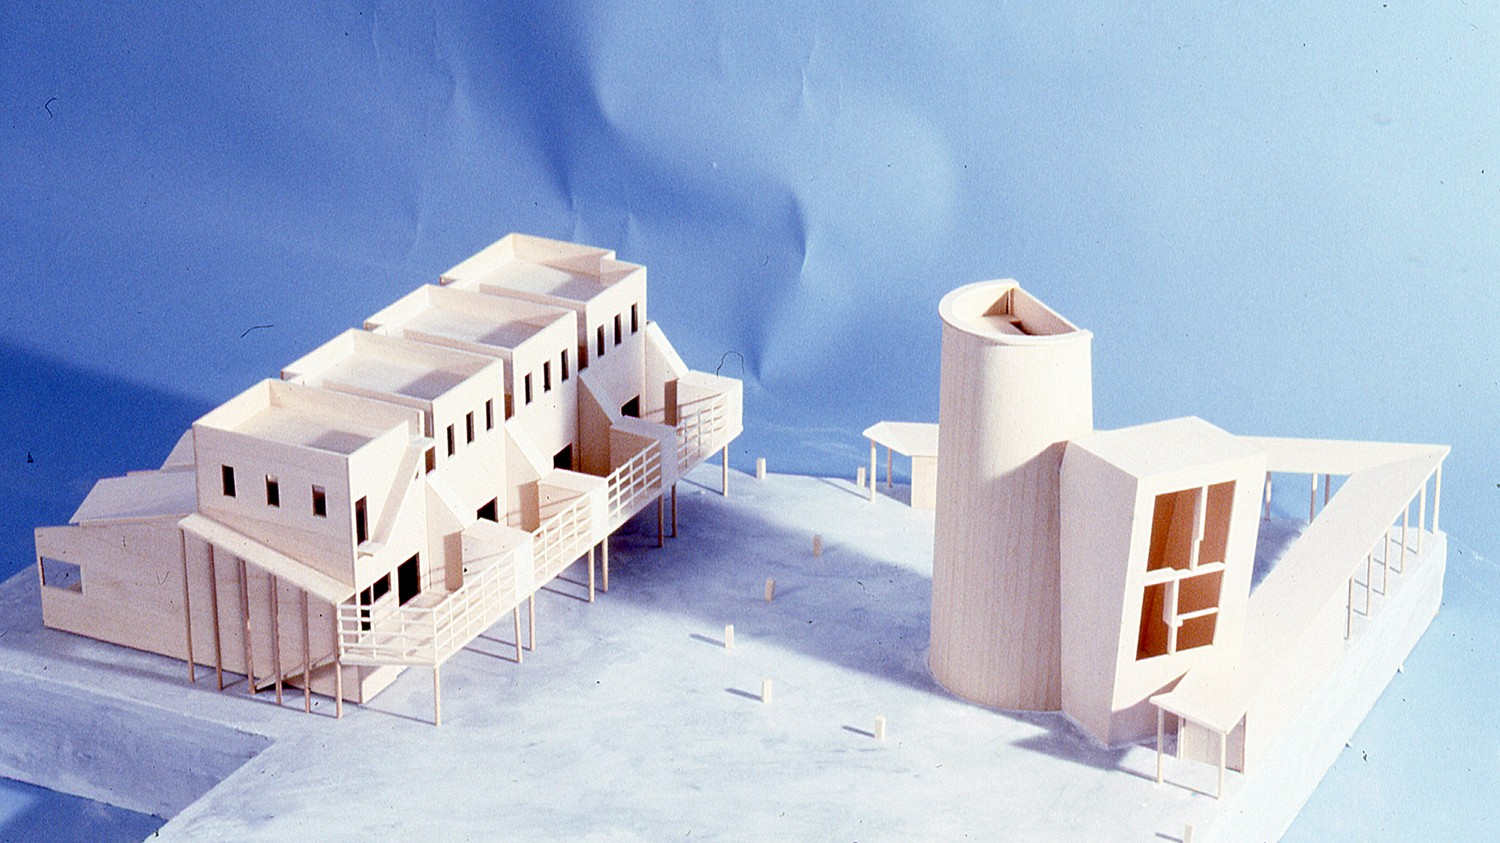 https://s3.us-east-2.amazonaws.com/steven-holl/uploads/projects/project-images/StevenHollArchitects_Ludlow_Model_3_WH.jpg